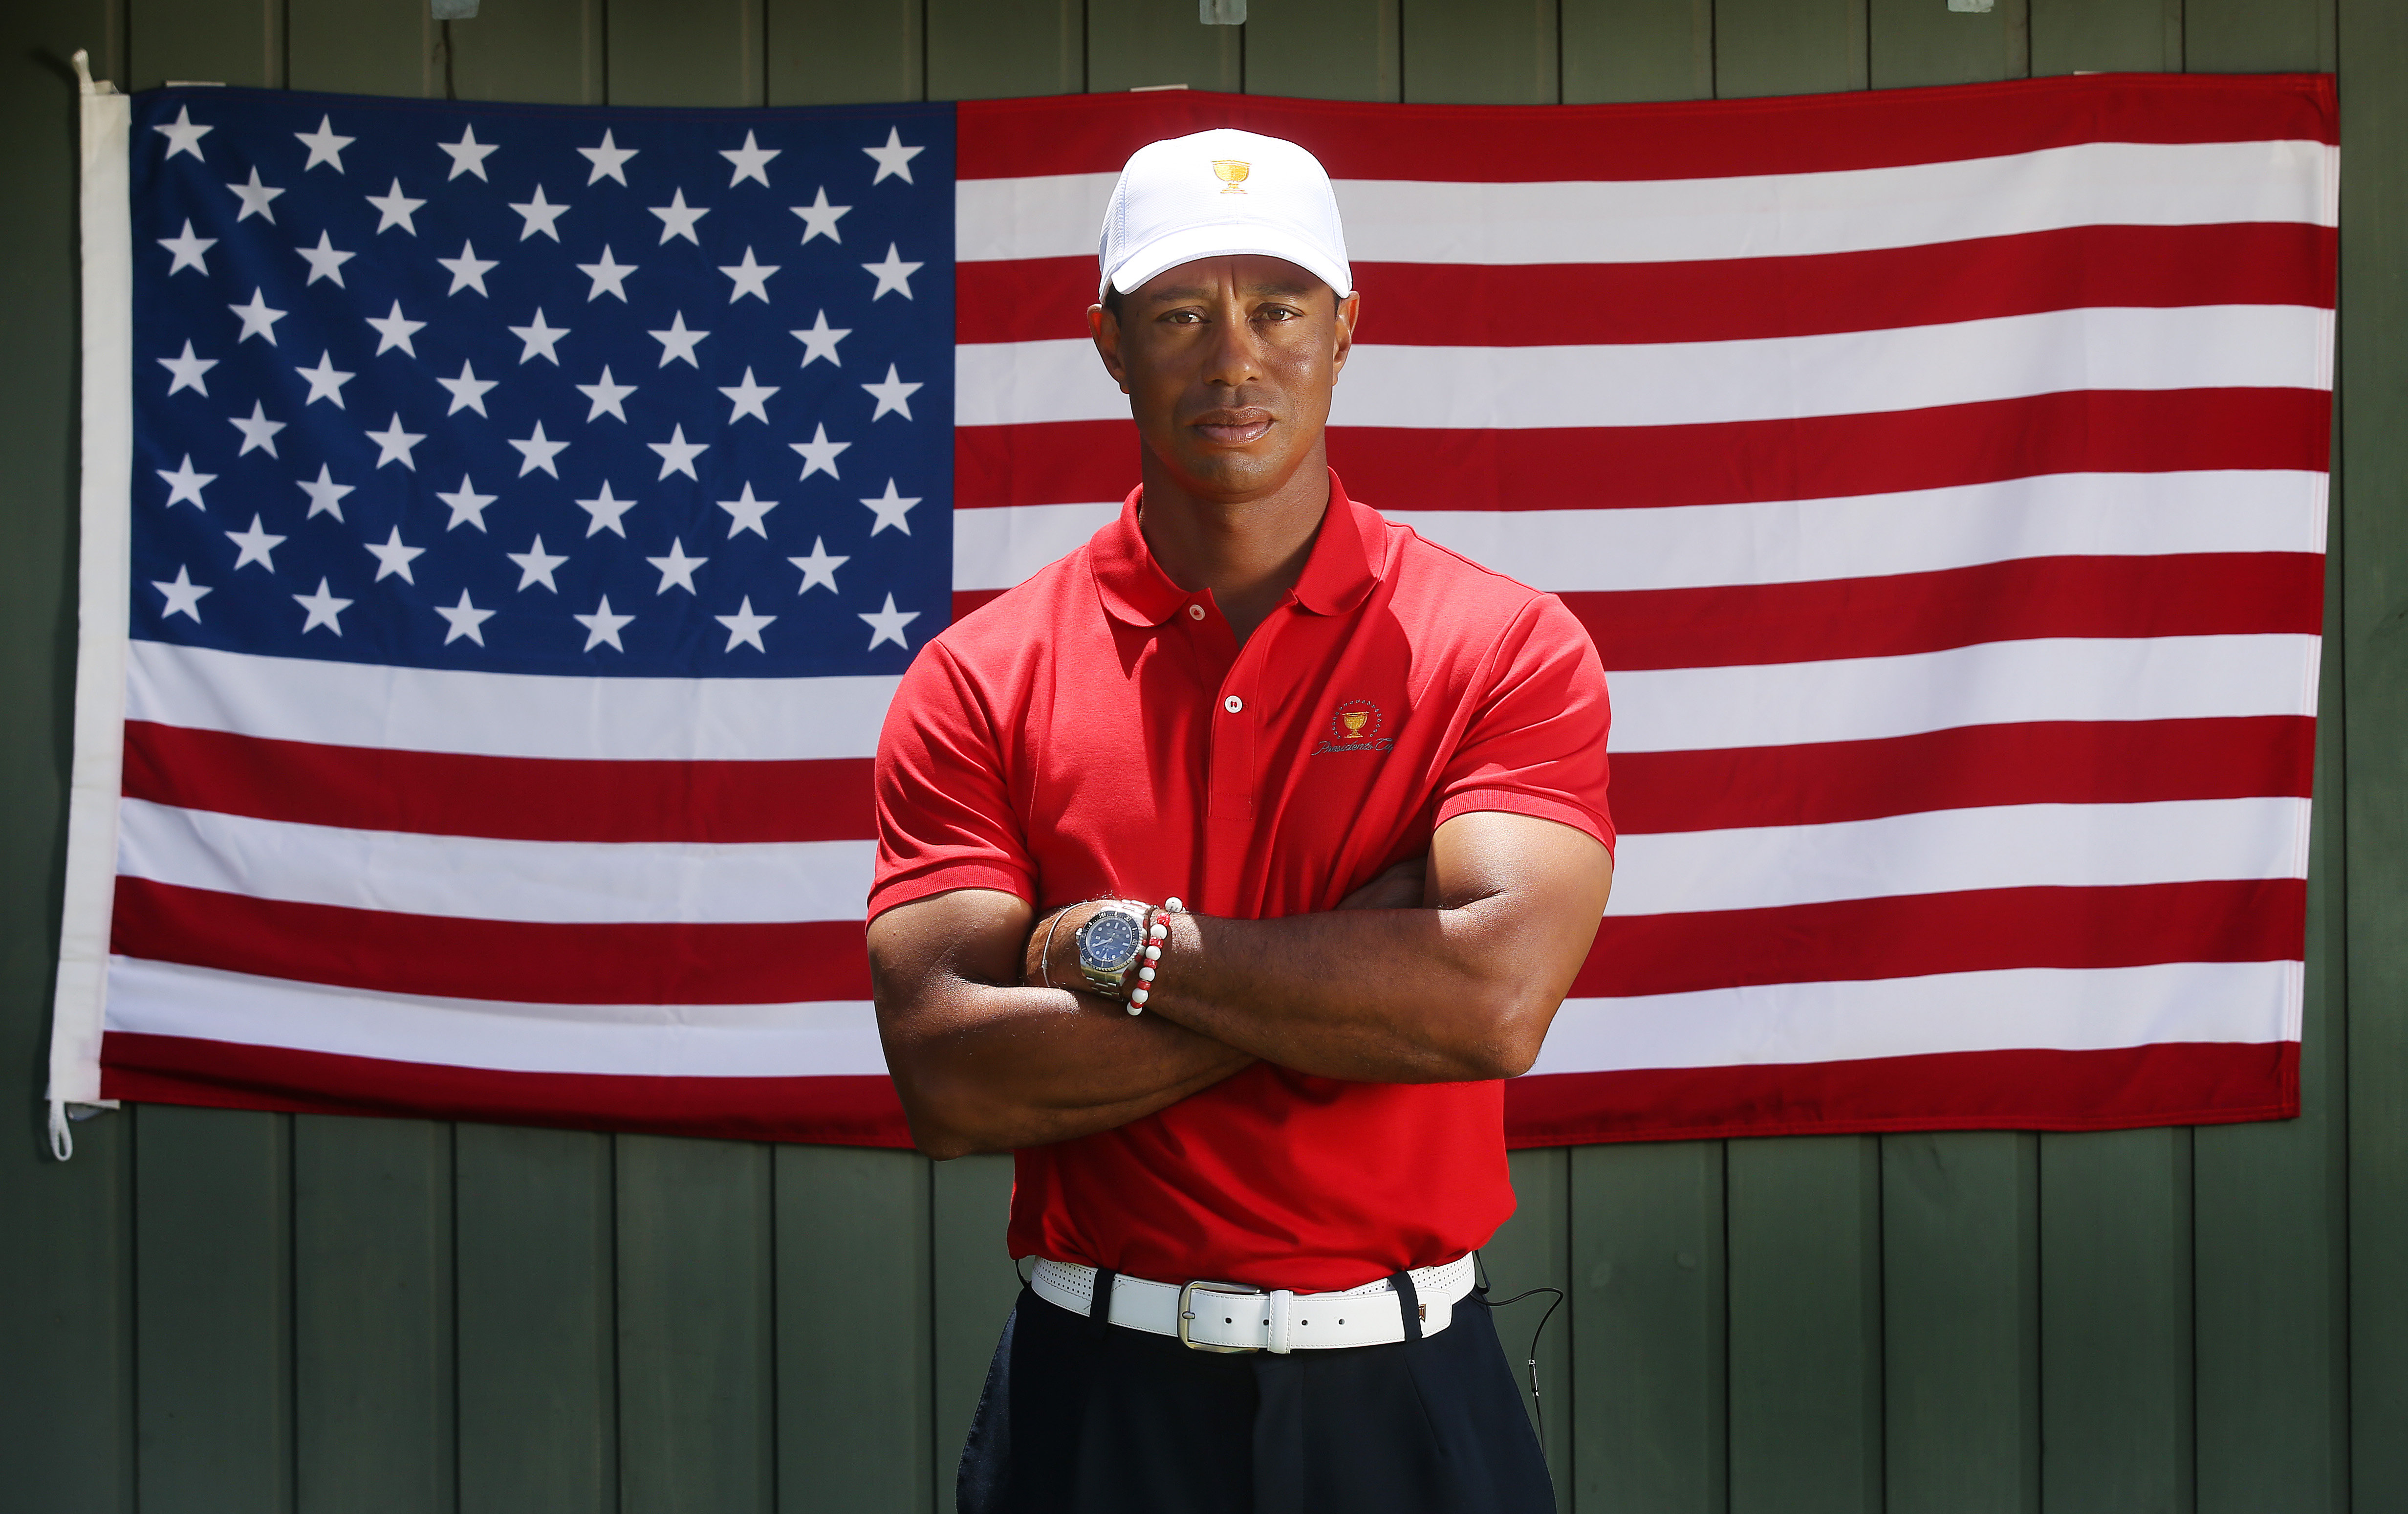 Tiger Woods ahead of the 2019 Presidents Cup